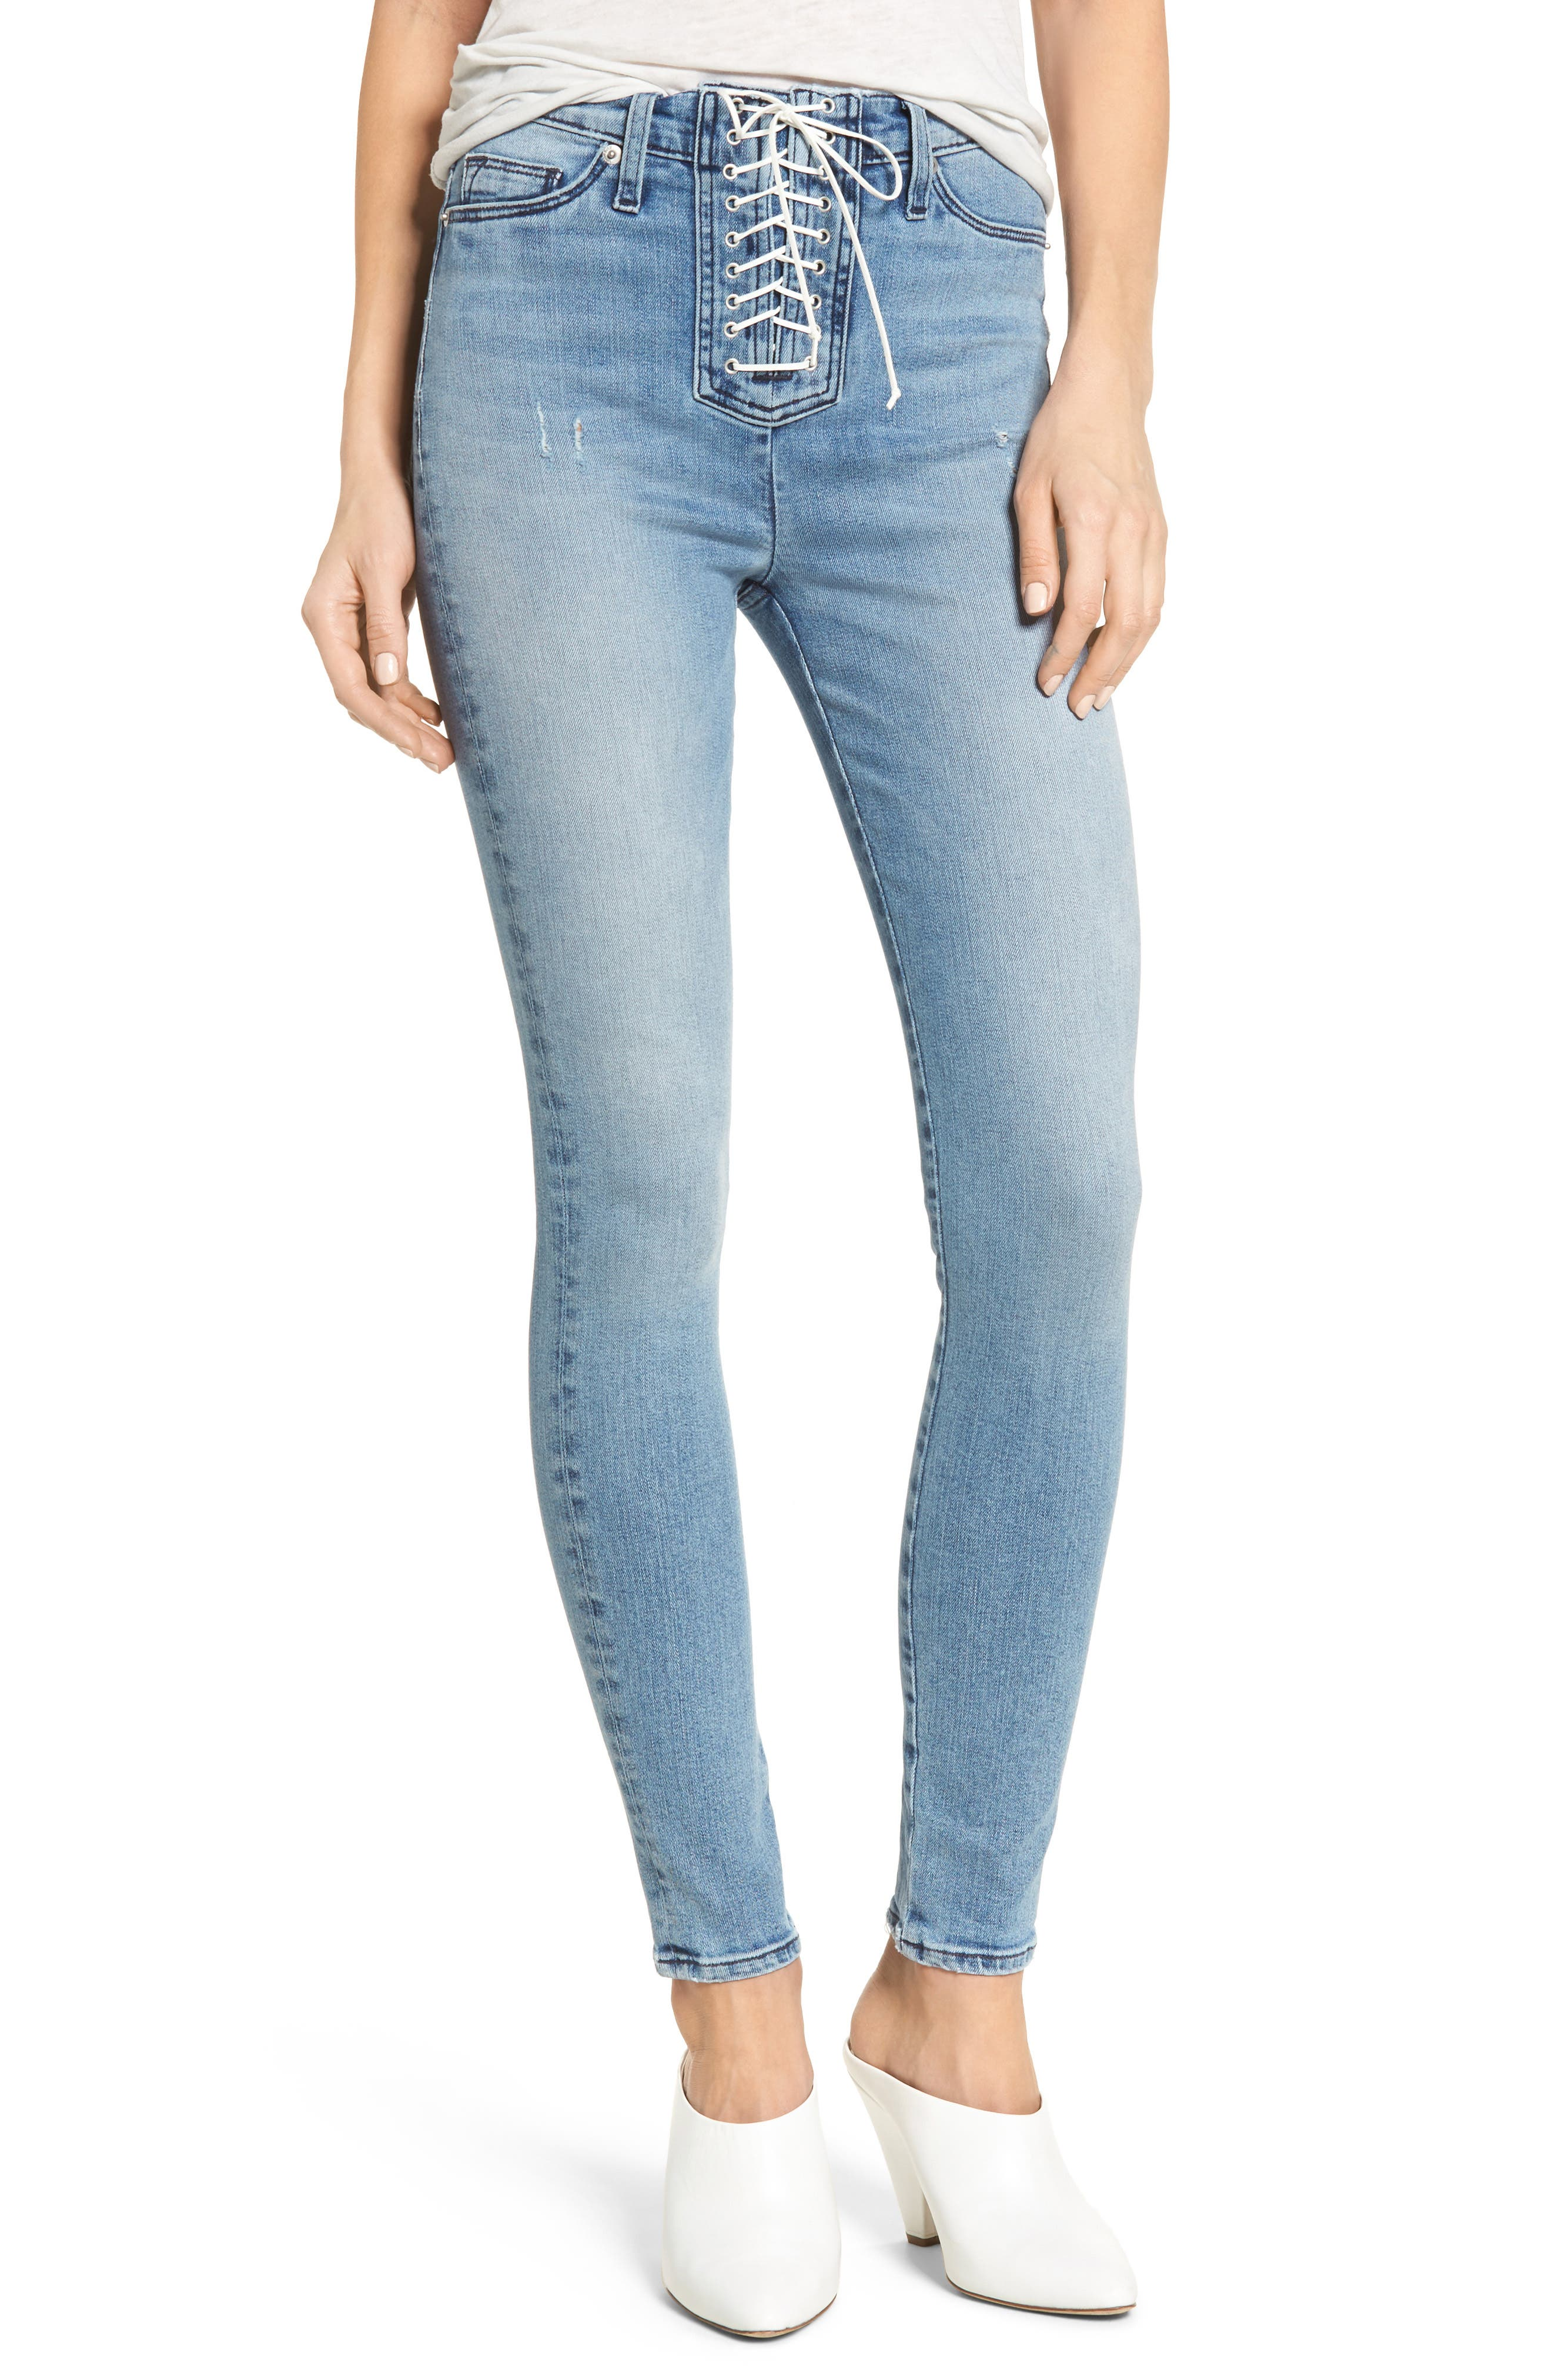 Bullocks Lace-Up High Waist Super Skinny Jeans,                         Main,                         color, Guilty Pleasure